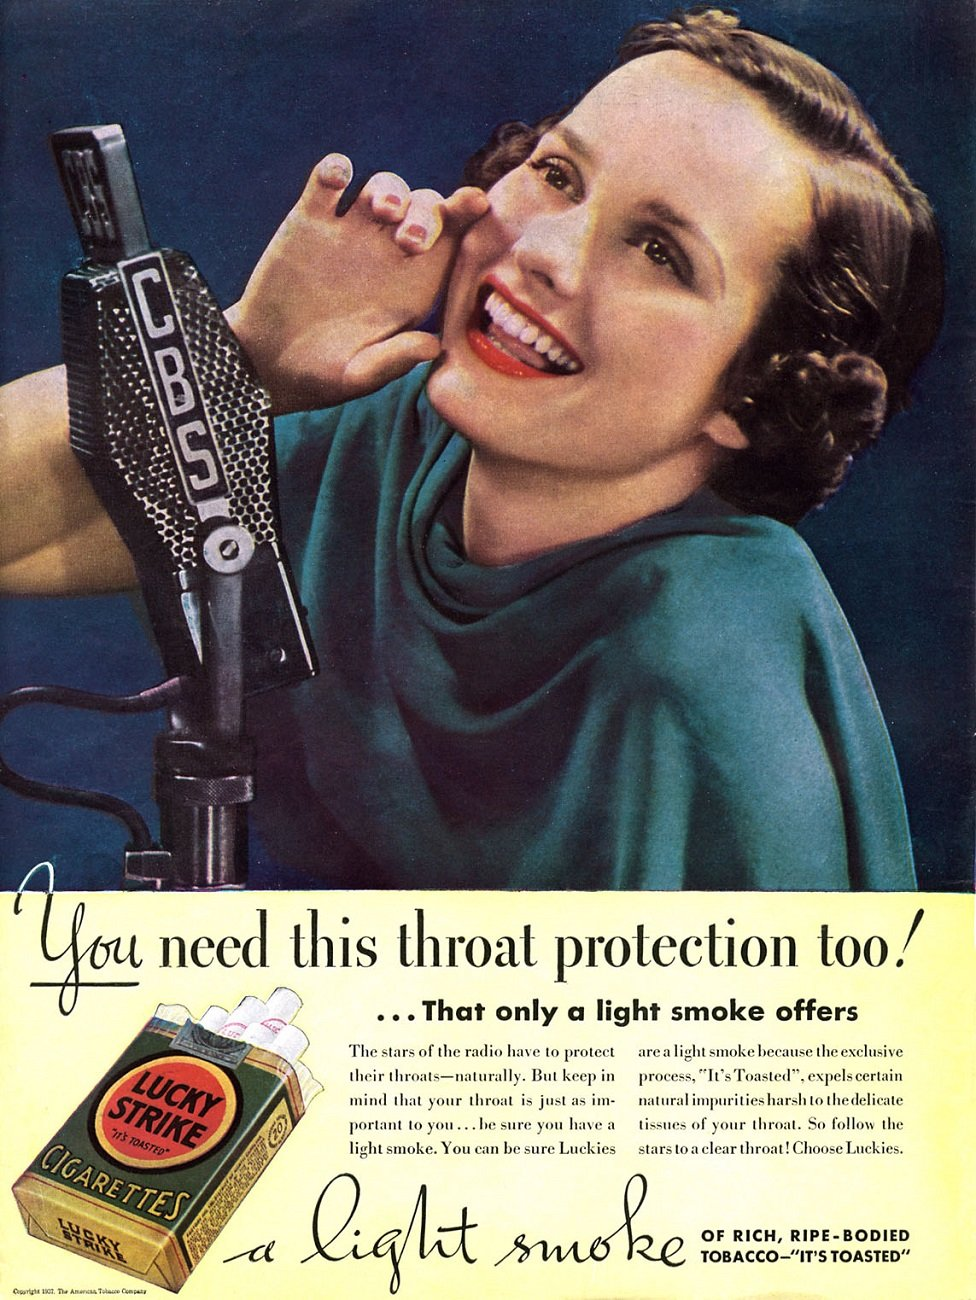 A Lucky Strike ad from 1937 publicising the healthy and protective qualities of tobacco